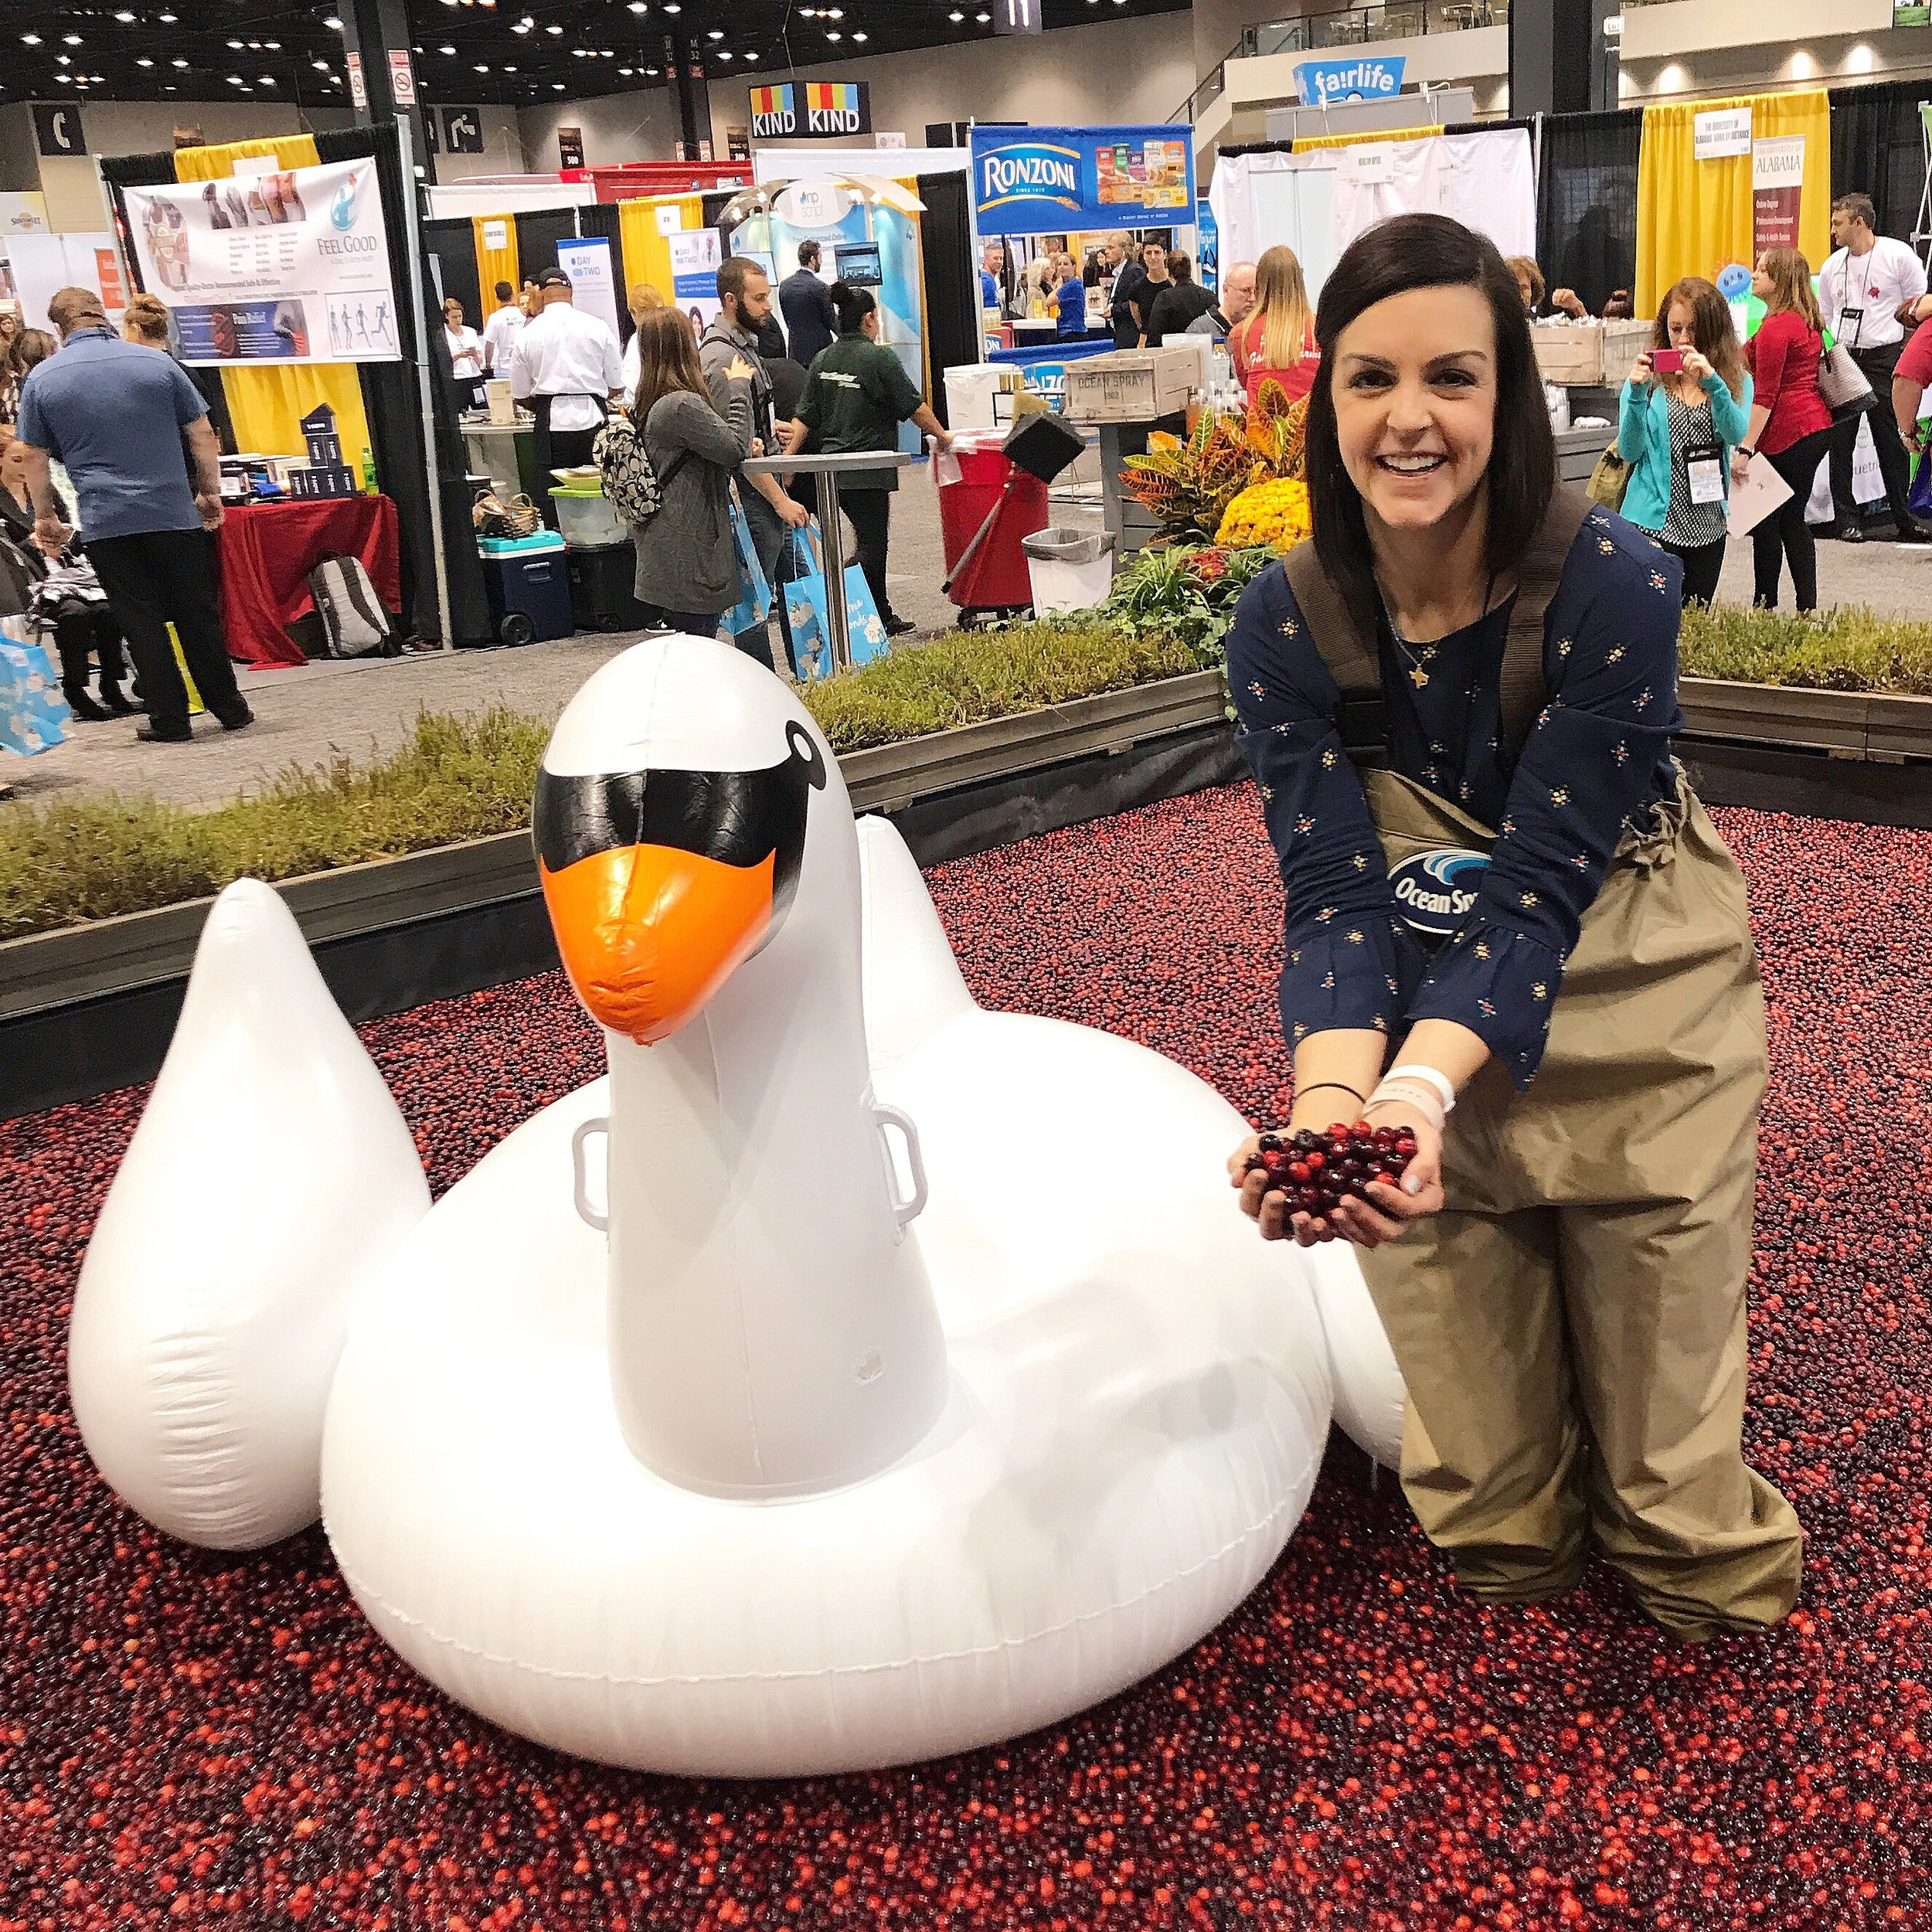 Me...in the cranberry bog... inside the Chicago convention center... in waders and boots... next to a massive inflatable swan. #totallynormal